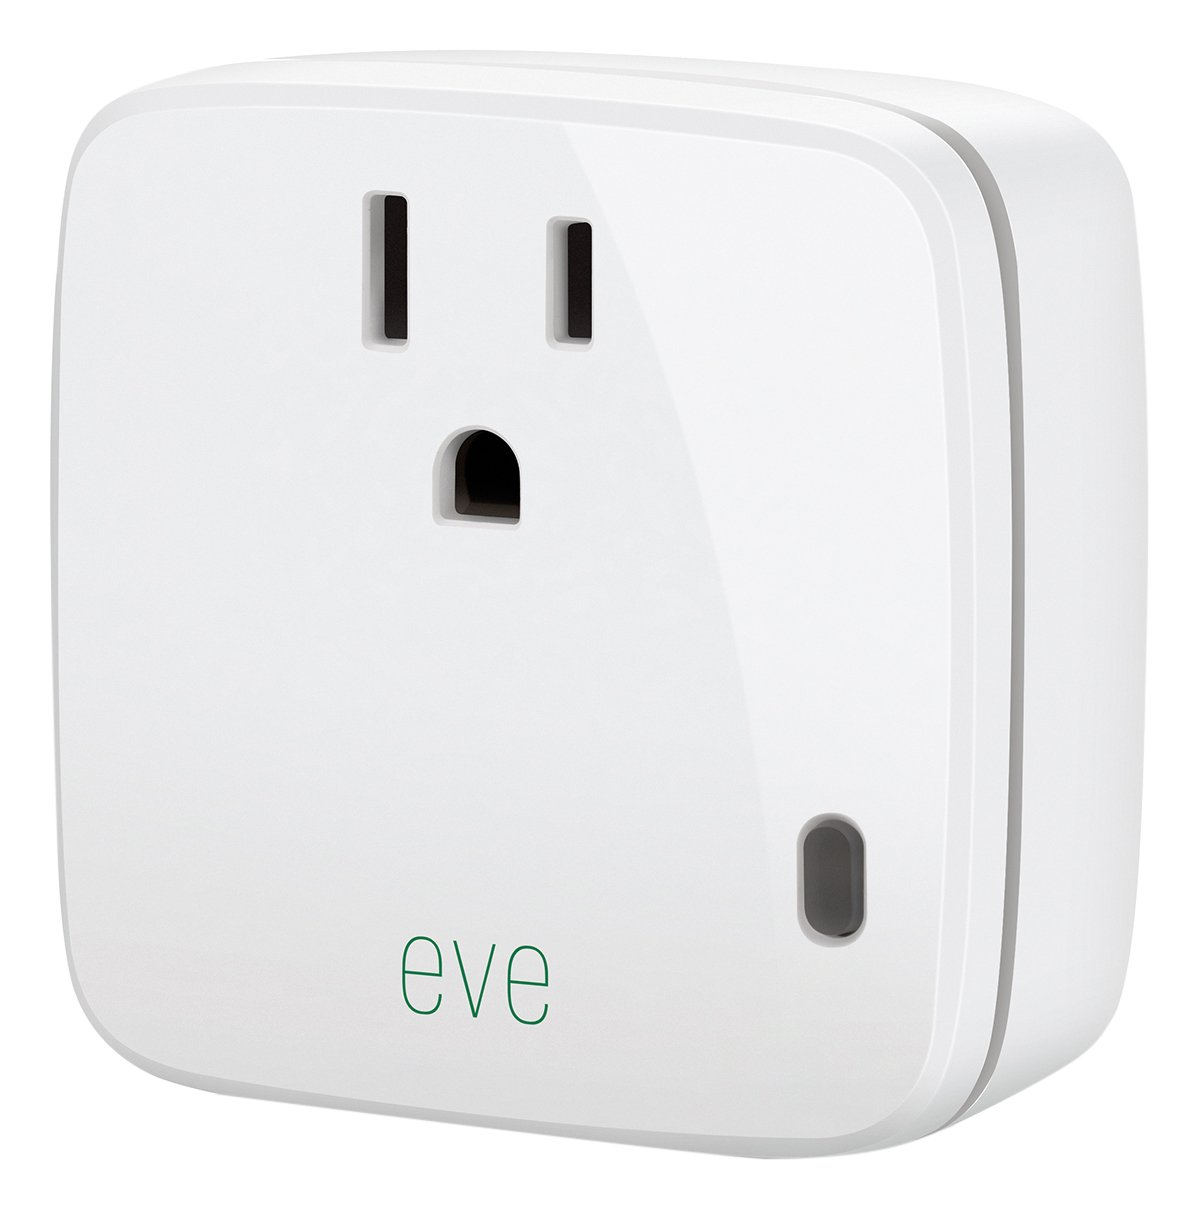 Elgato Eve Energy (1st Generation) - Switch & Power Meter with Apple HomeKit technology, Bluetooth Low Energy